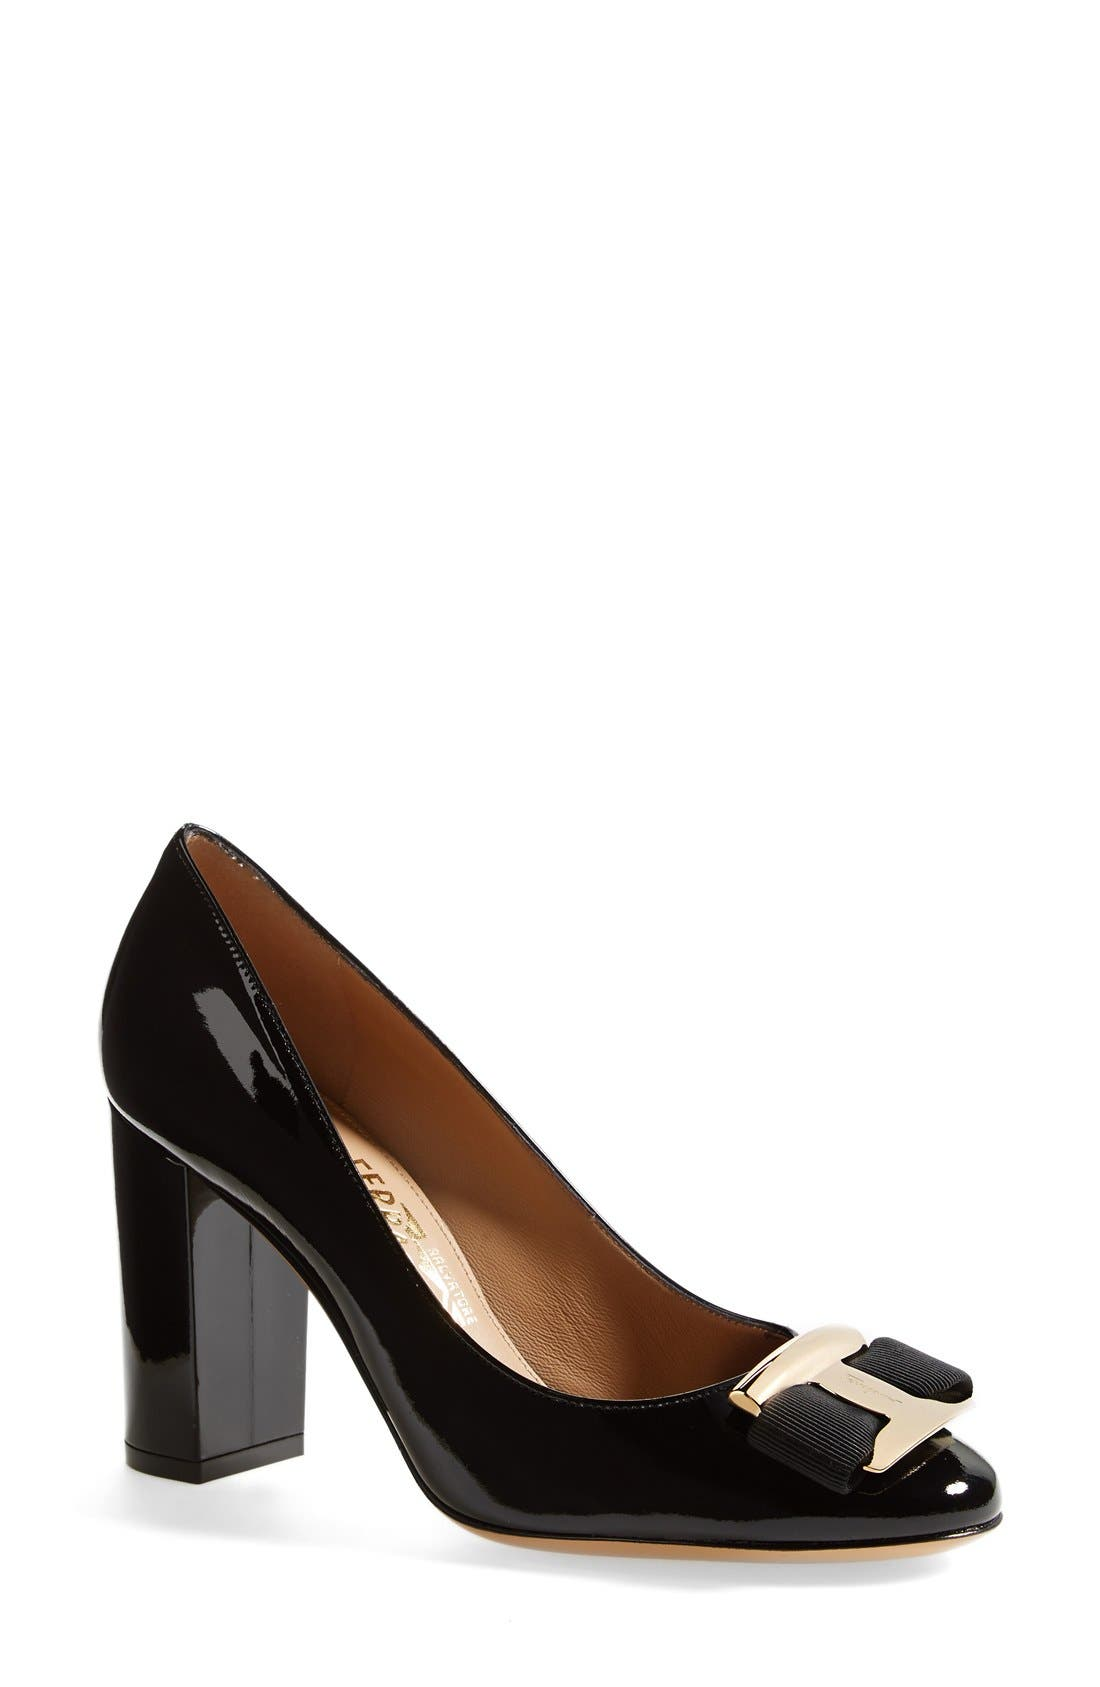 Main Image - Salvatore Ferragamo 'Ninna 85' Pump (Women)